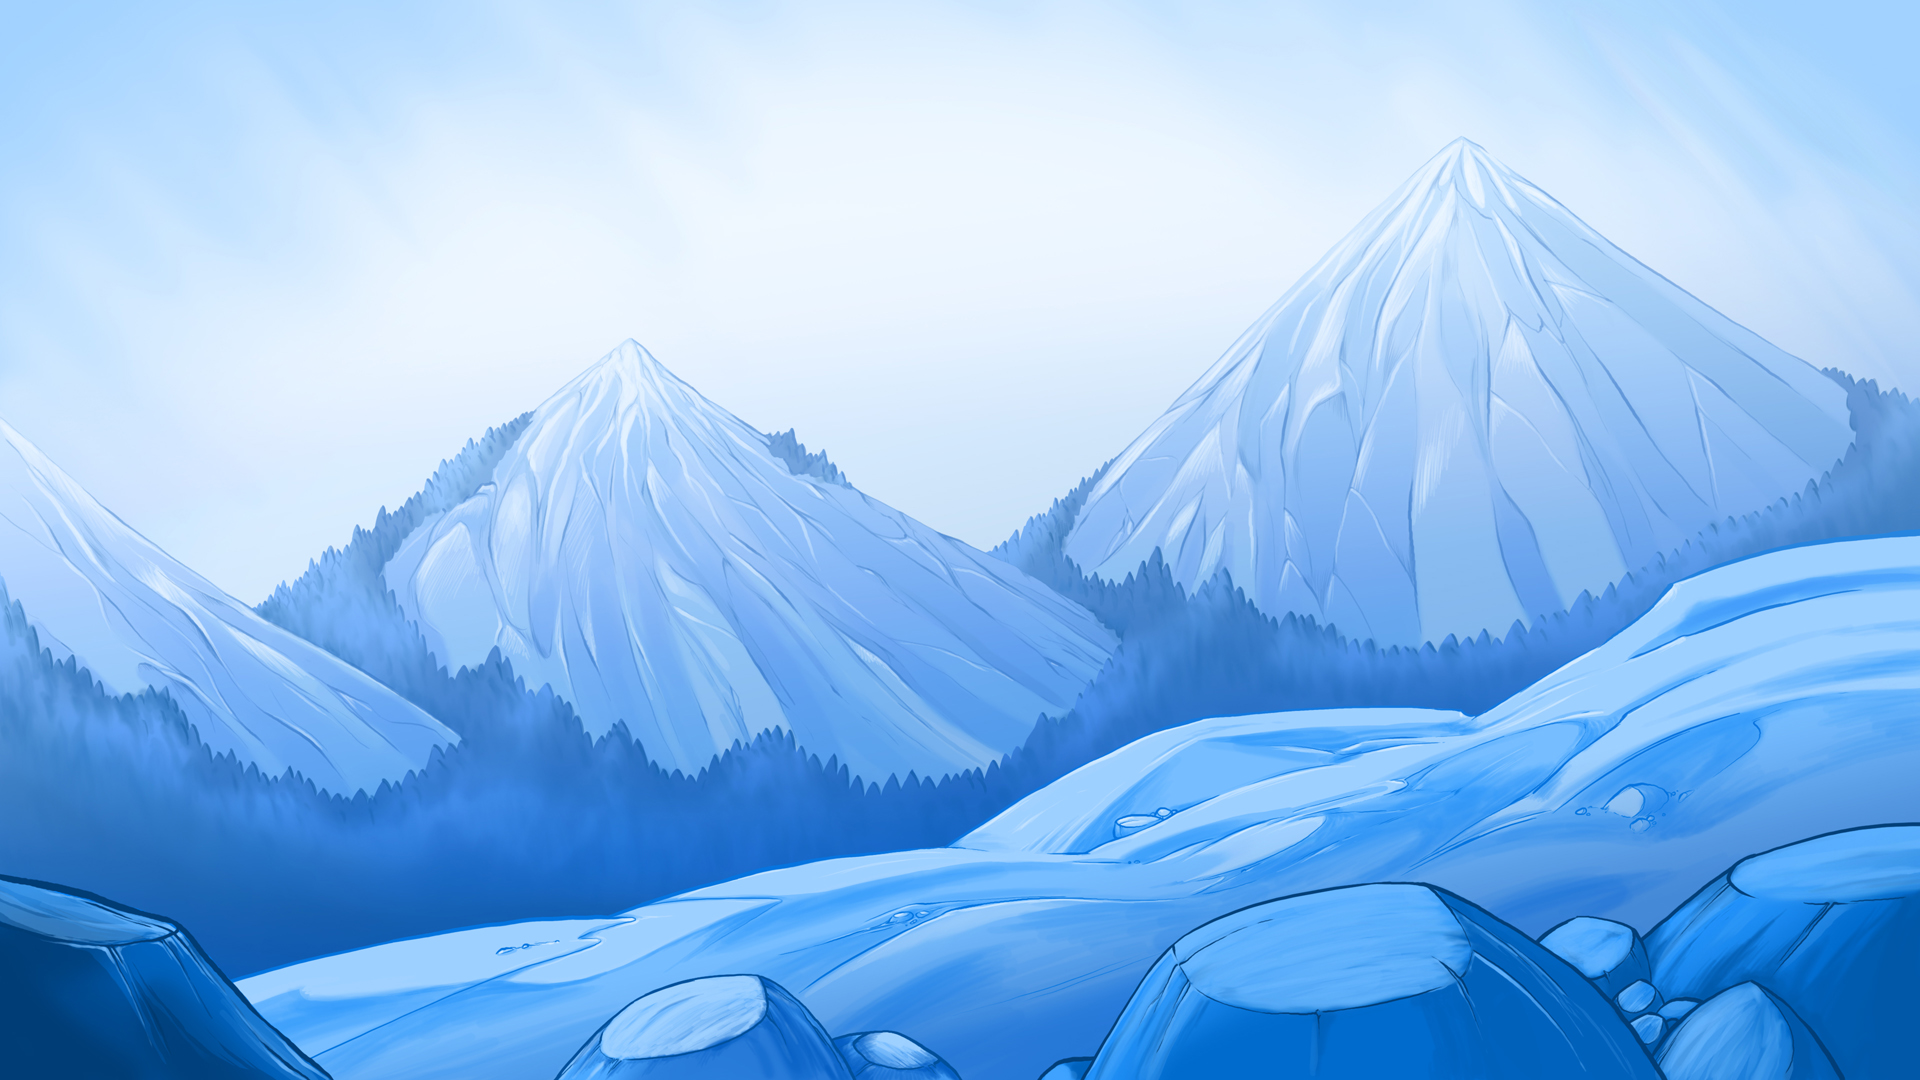 illustration backgrounds desktop camping andrew chesworth 1920x1080